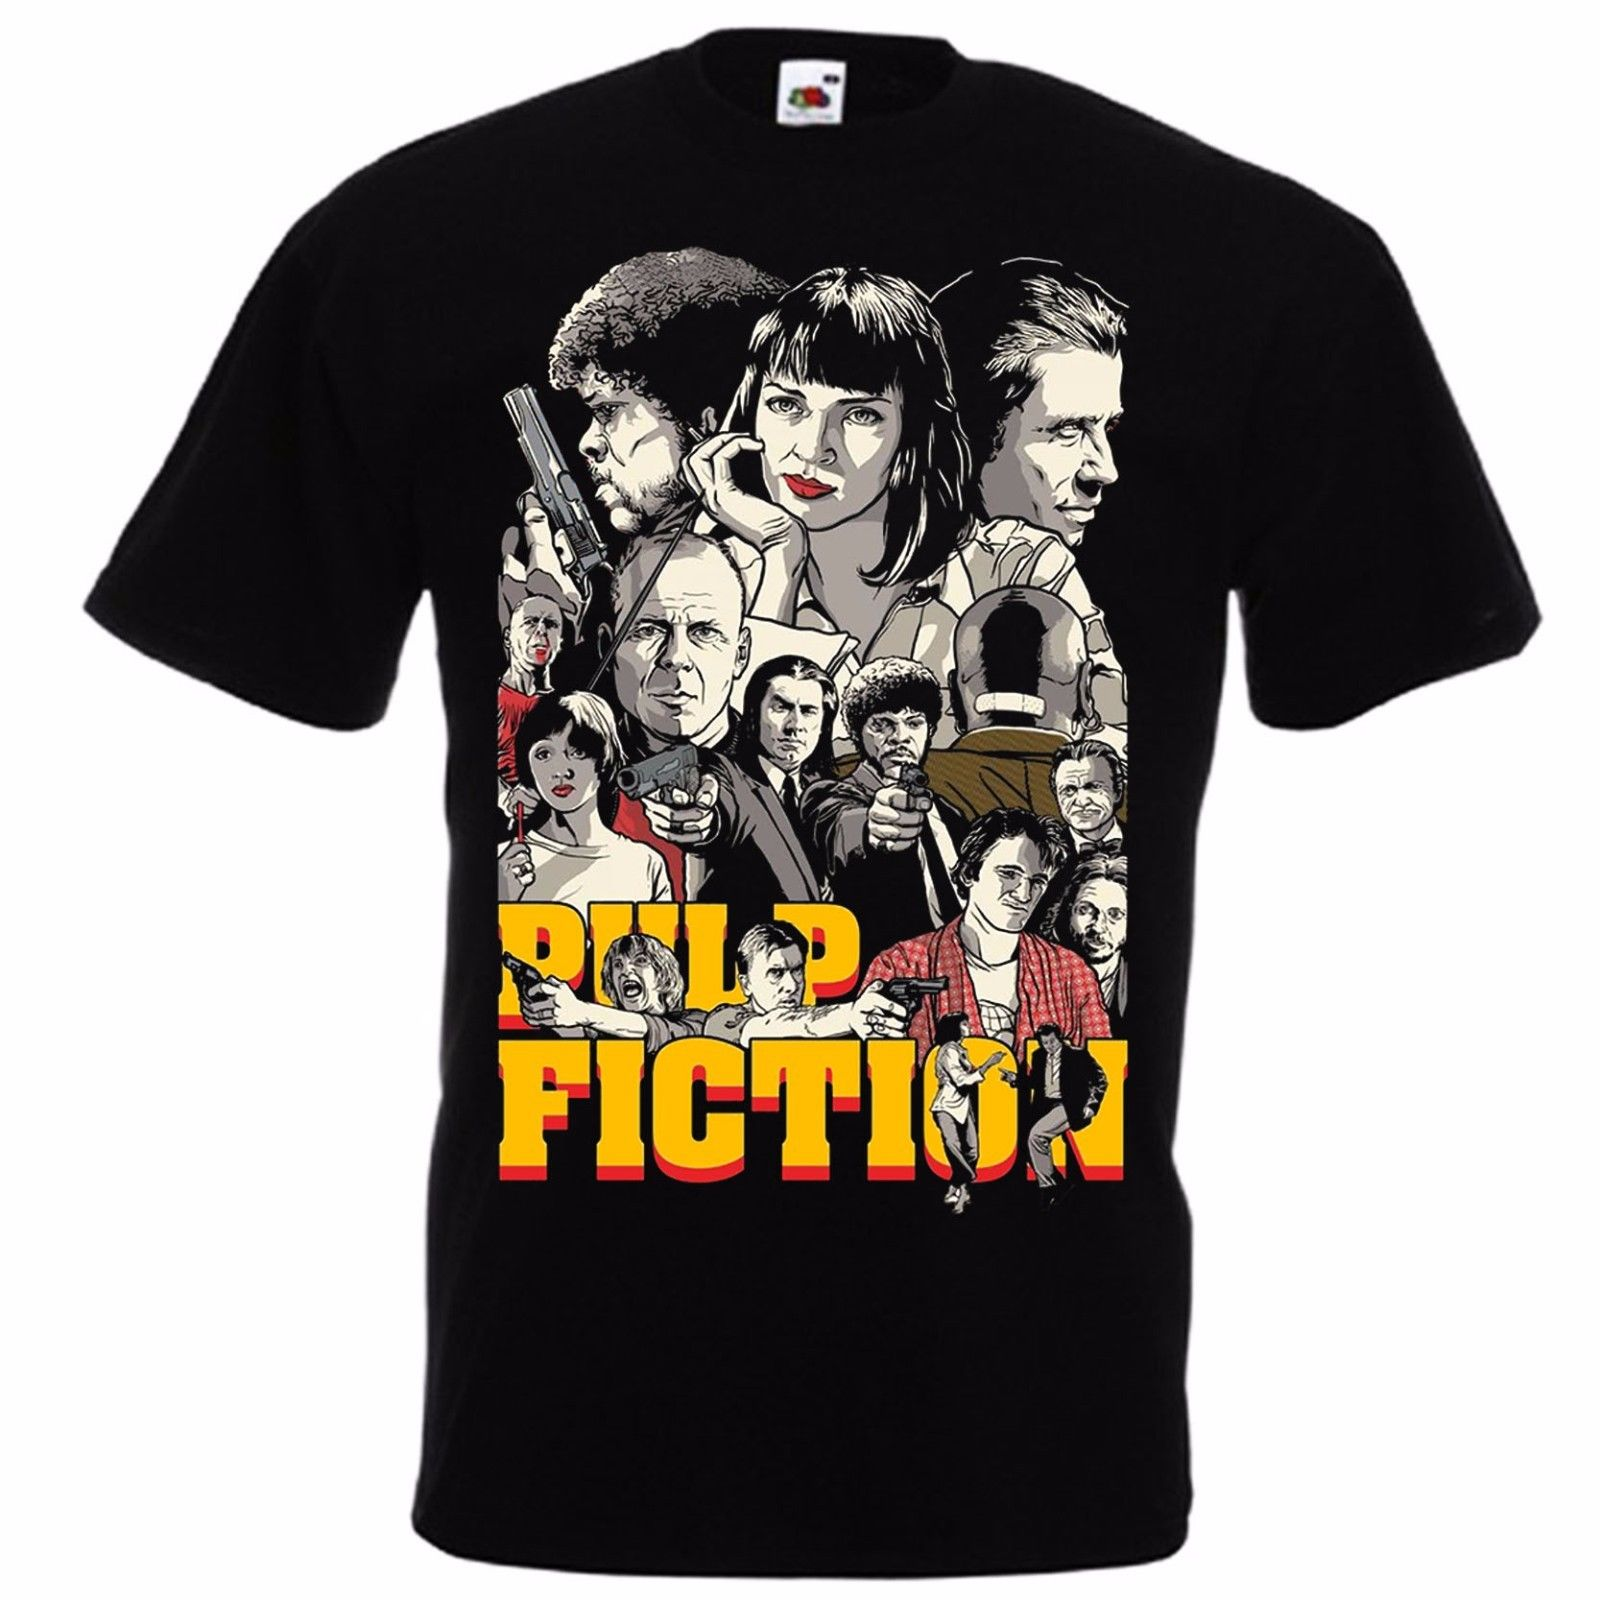 pulp-fiction-by-quentin-font-b-tarantino-b-font-john-travolta-samuel-jackson-uma-thurman-t-shirt-short-sleeves-new-fashion-t-shirt-clothing